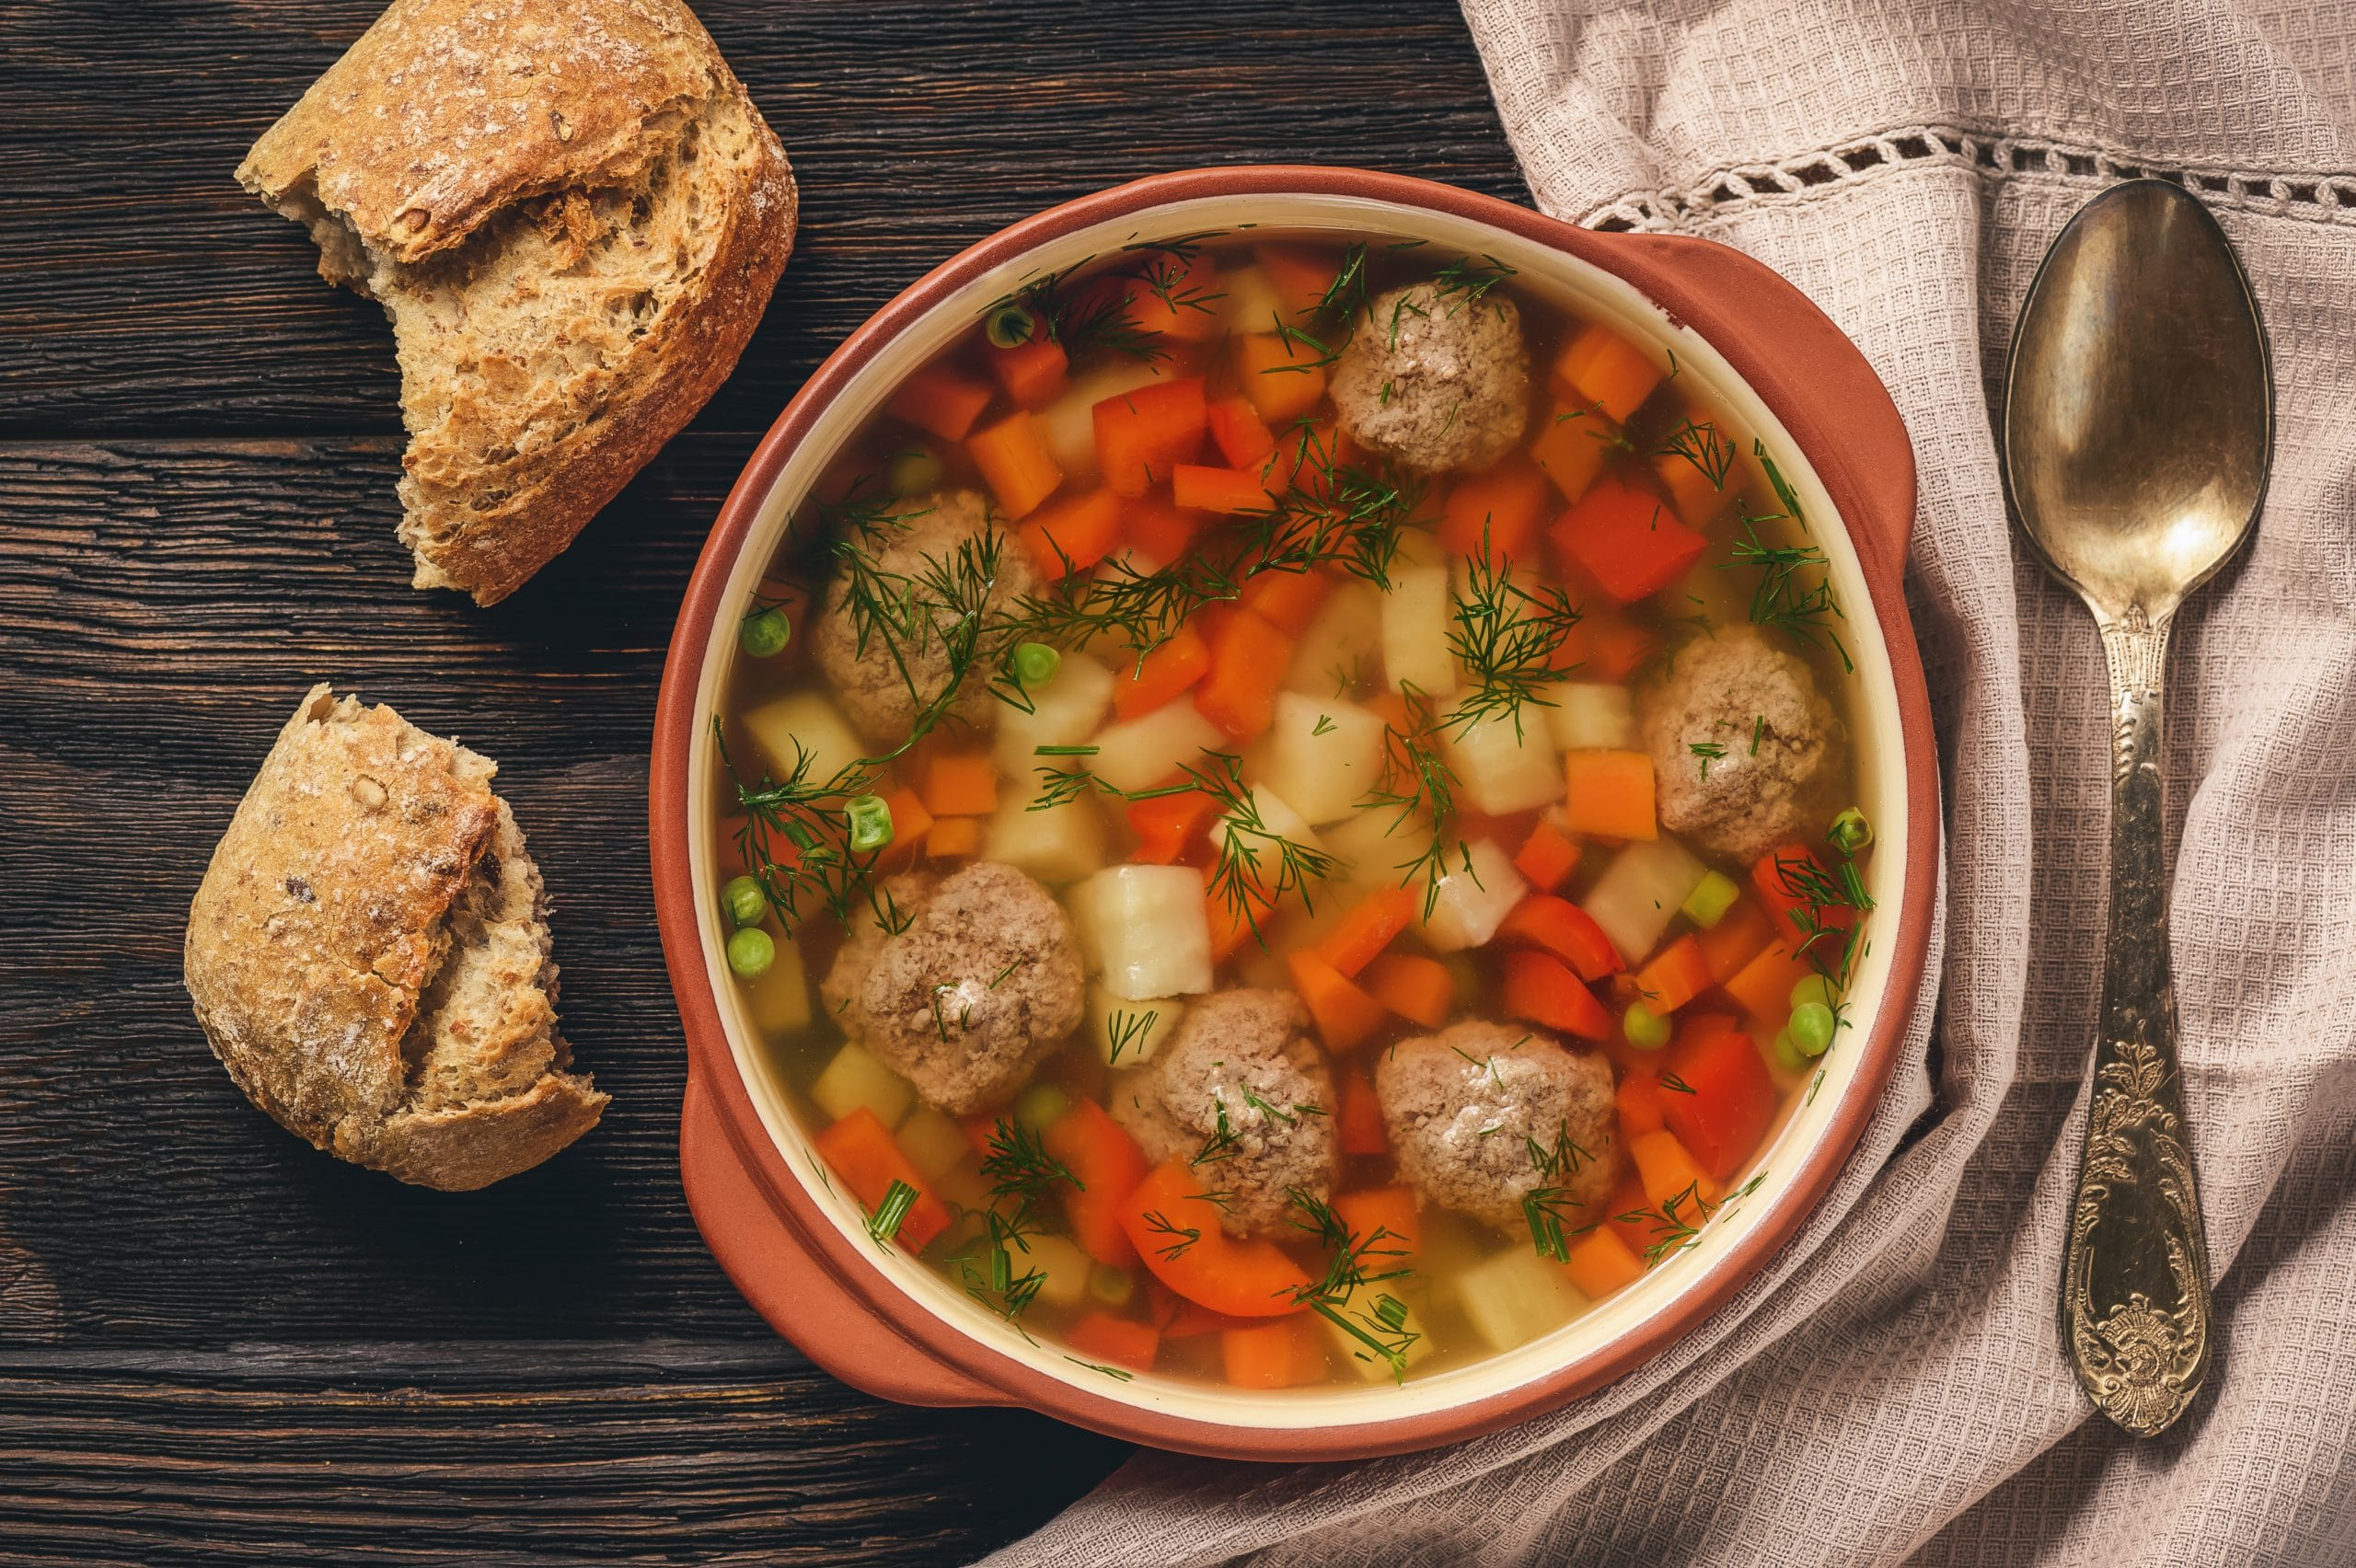 Healthy vegetable soup with meatballs from Susta Foods